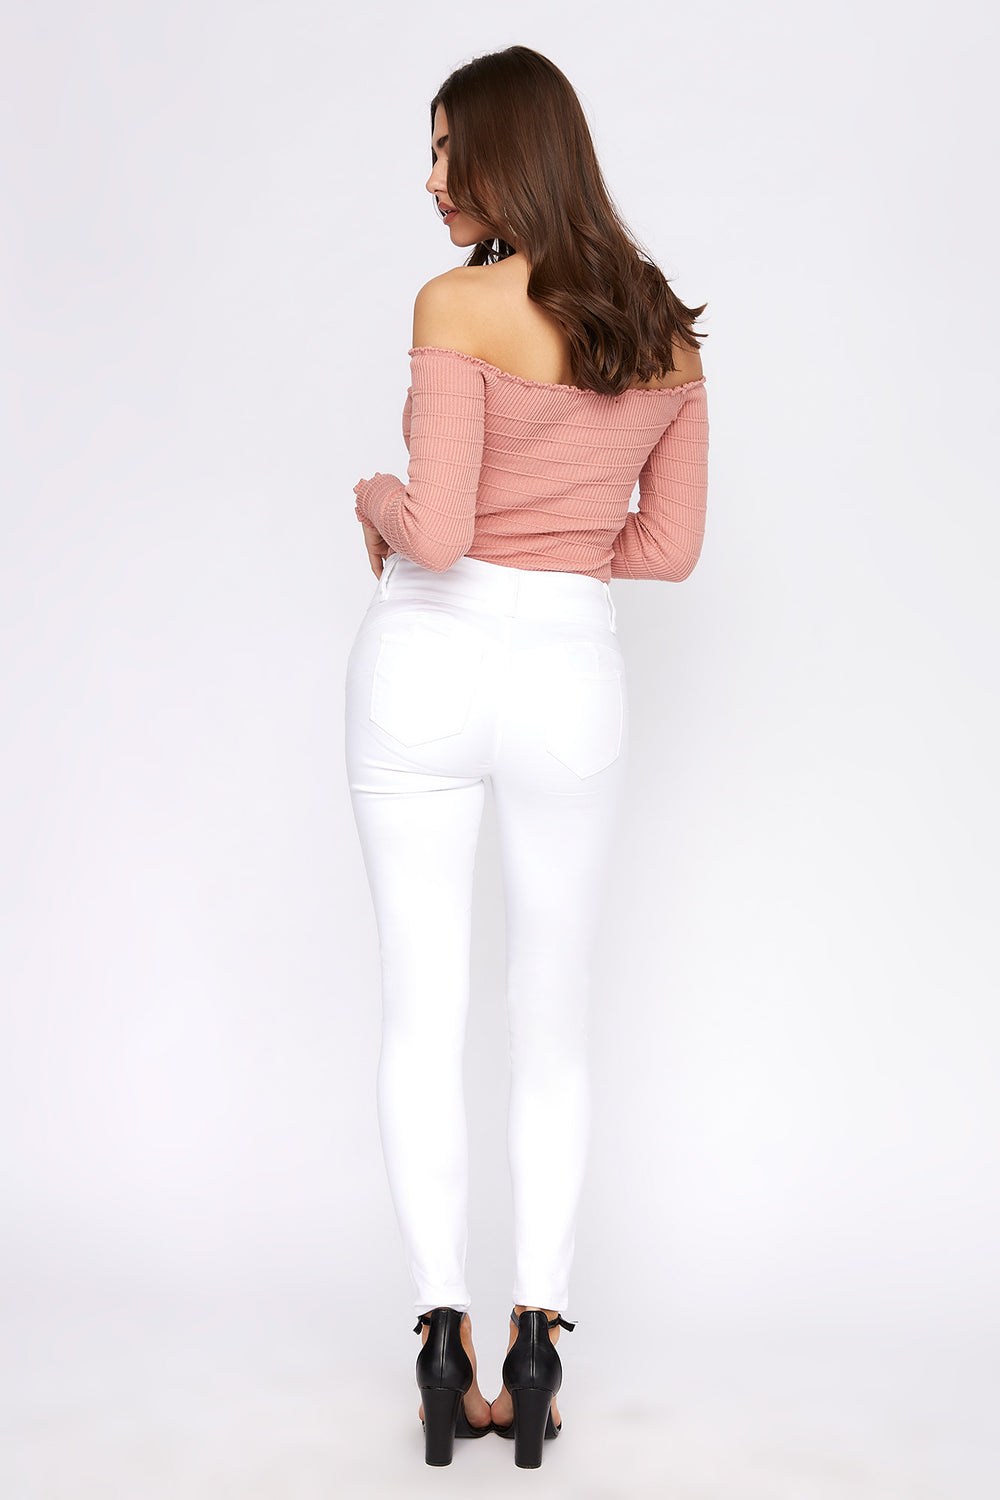 Butt, I Love You 3-Tier High Rise Push-Up Skinny Jean White